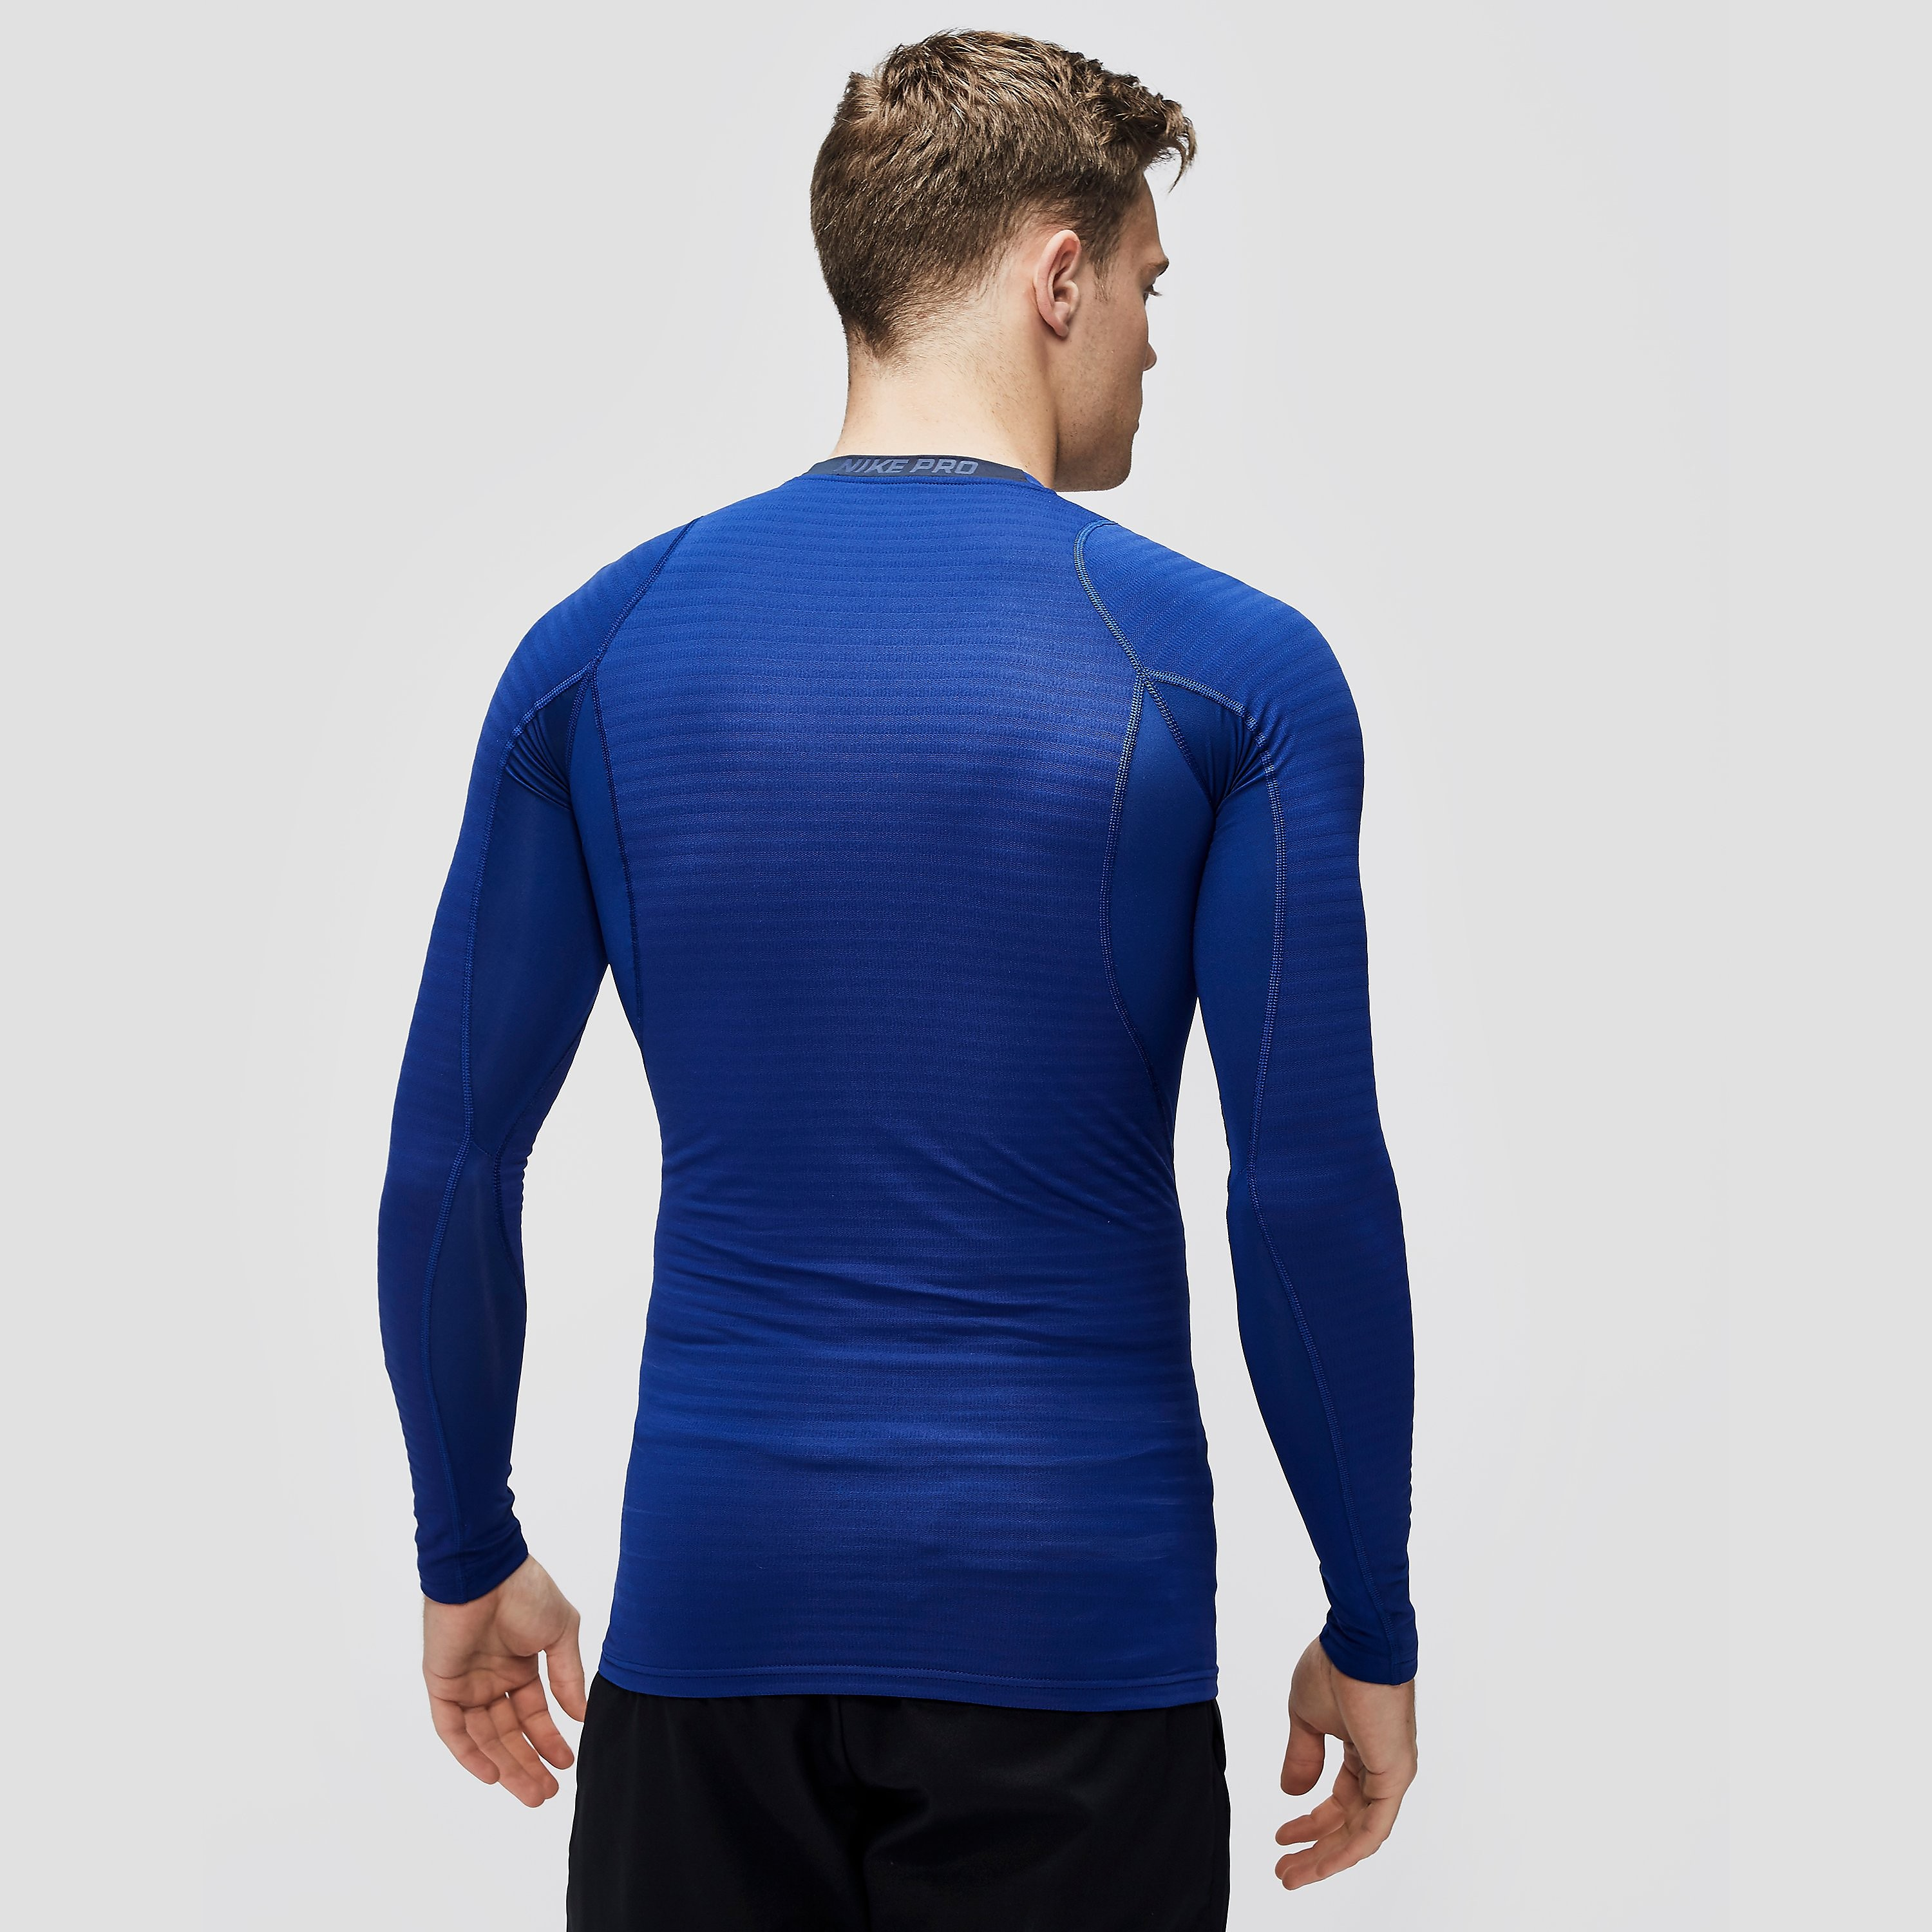 Nike Men's Pro Warm Compression Crew Top